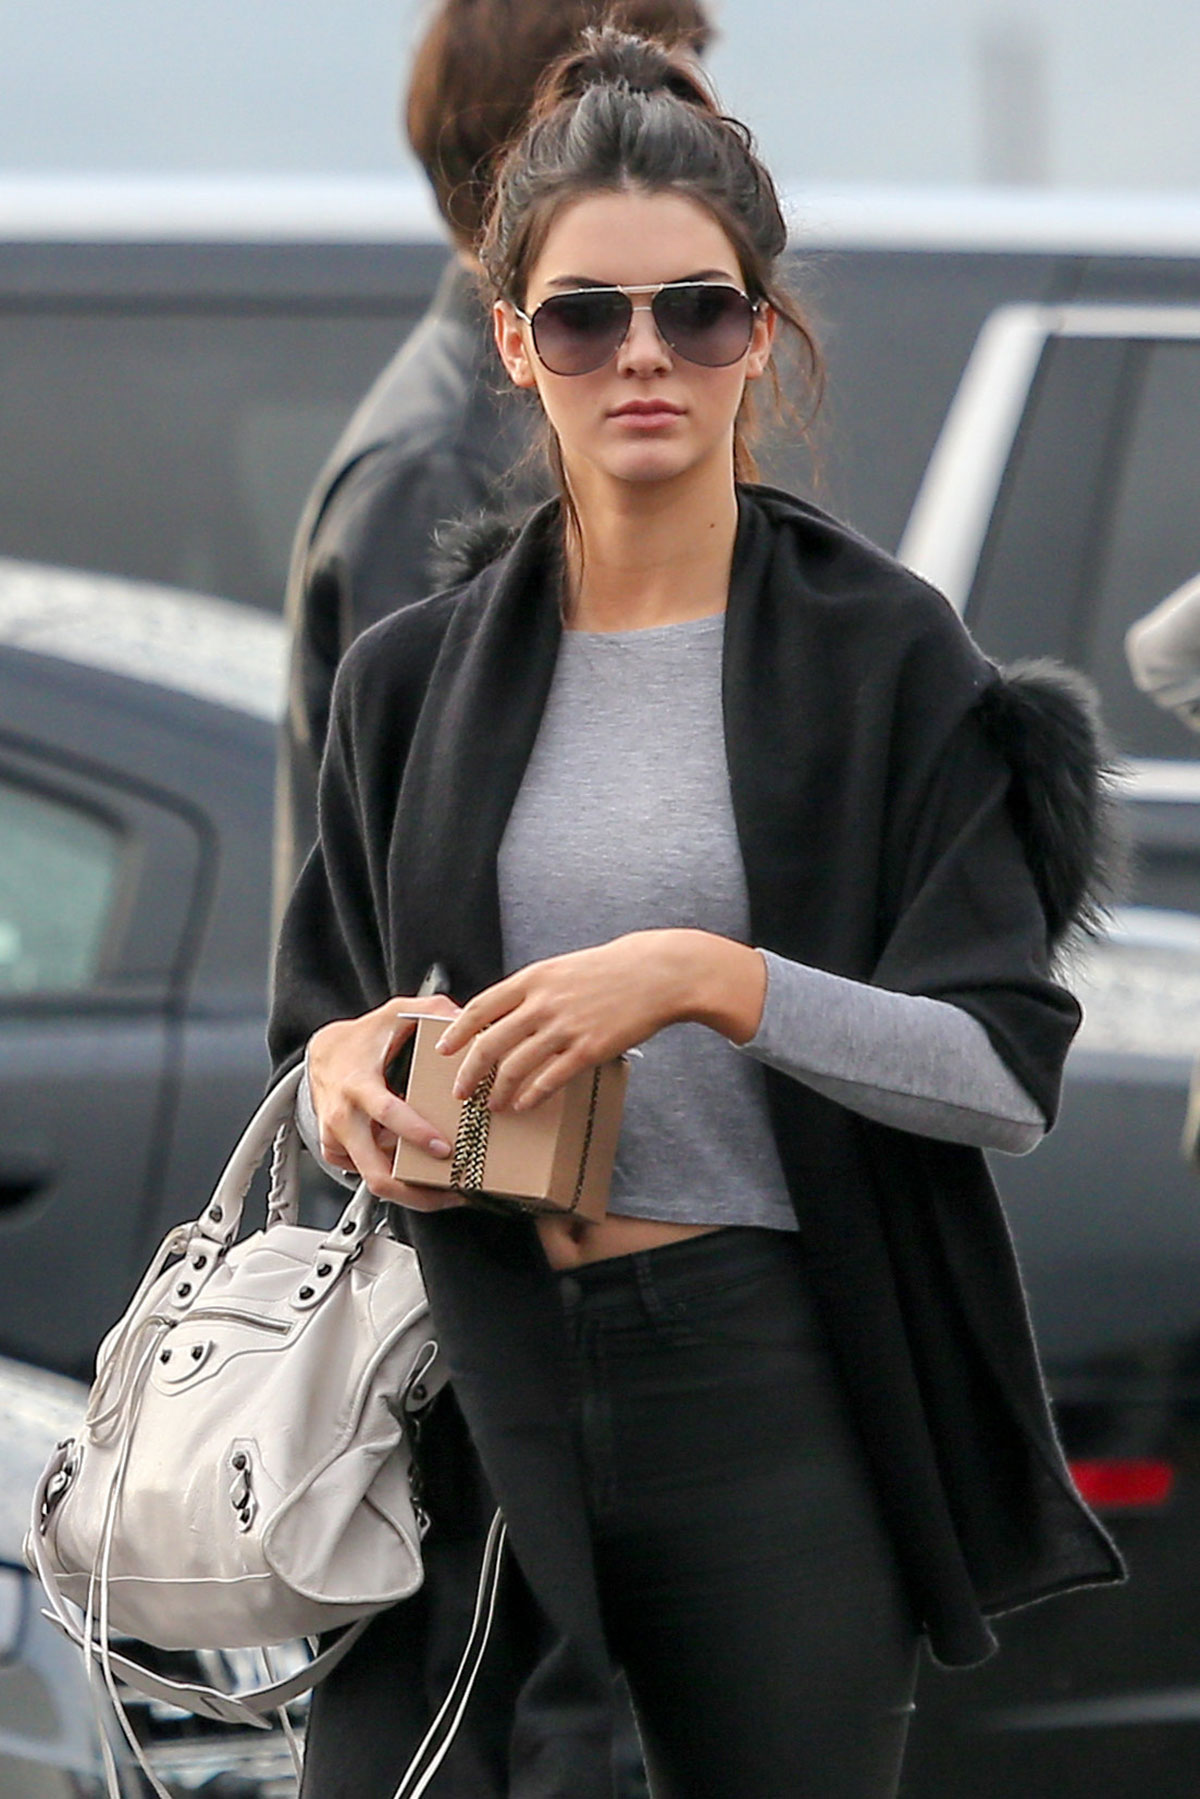 KENDALL JENNER Leaves a Photoshoot in Venice Beach ...